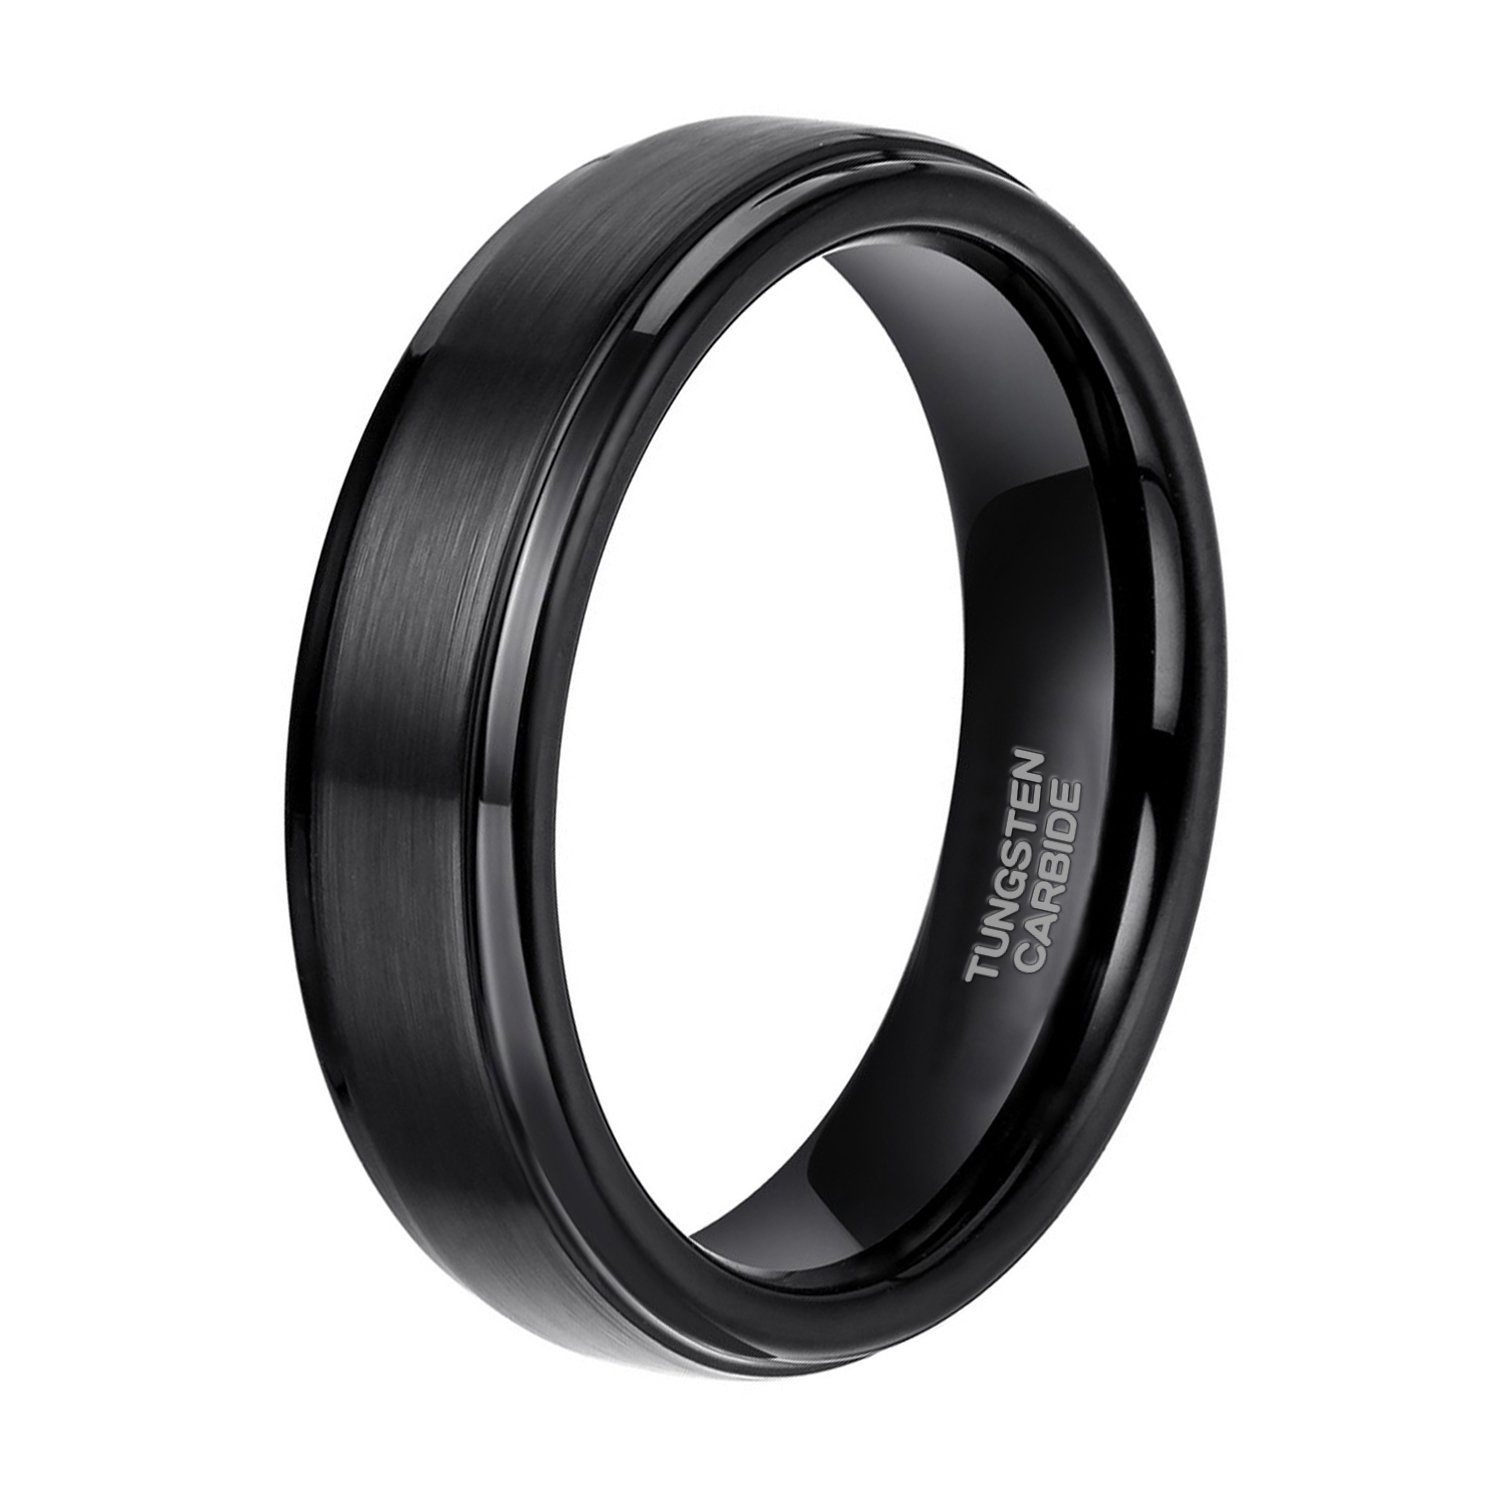 6mm Black Tungsten Carbide Wedding Ring Band for Men Brushed Style Comfort Fit Size 9